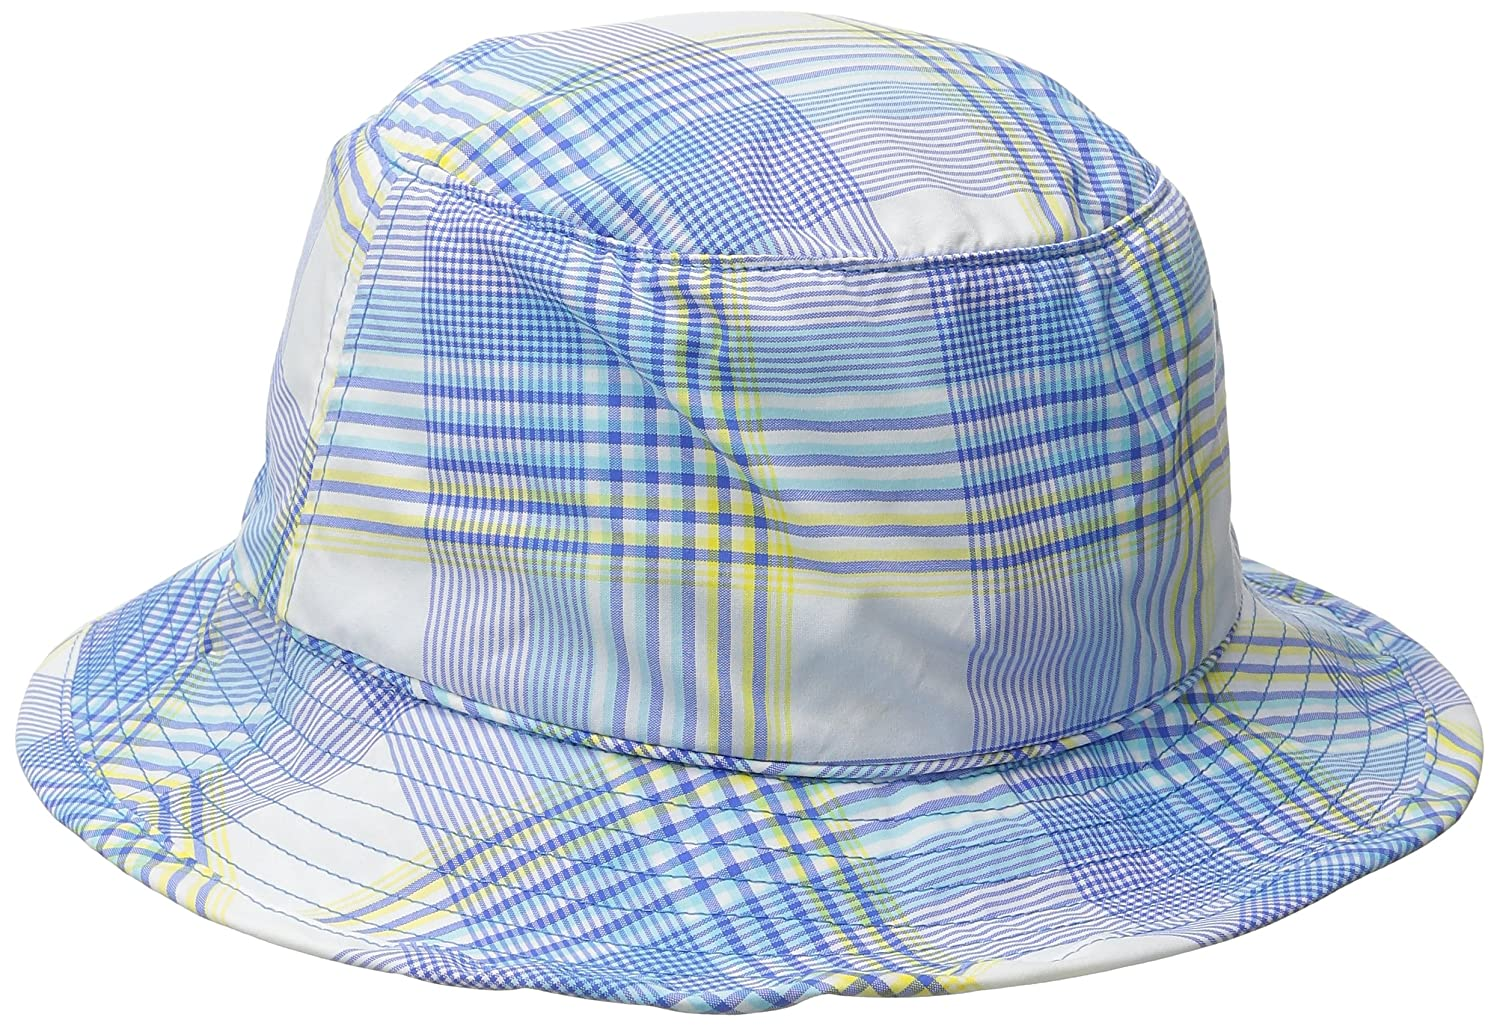 Columbia Women's Bahama Bucket Hat-Fossil/Solid, Small/Medium 1539381